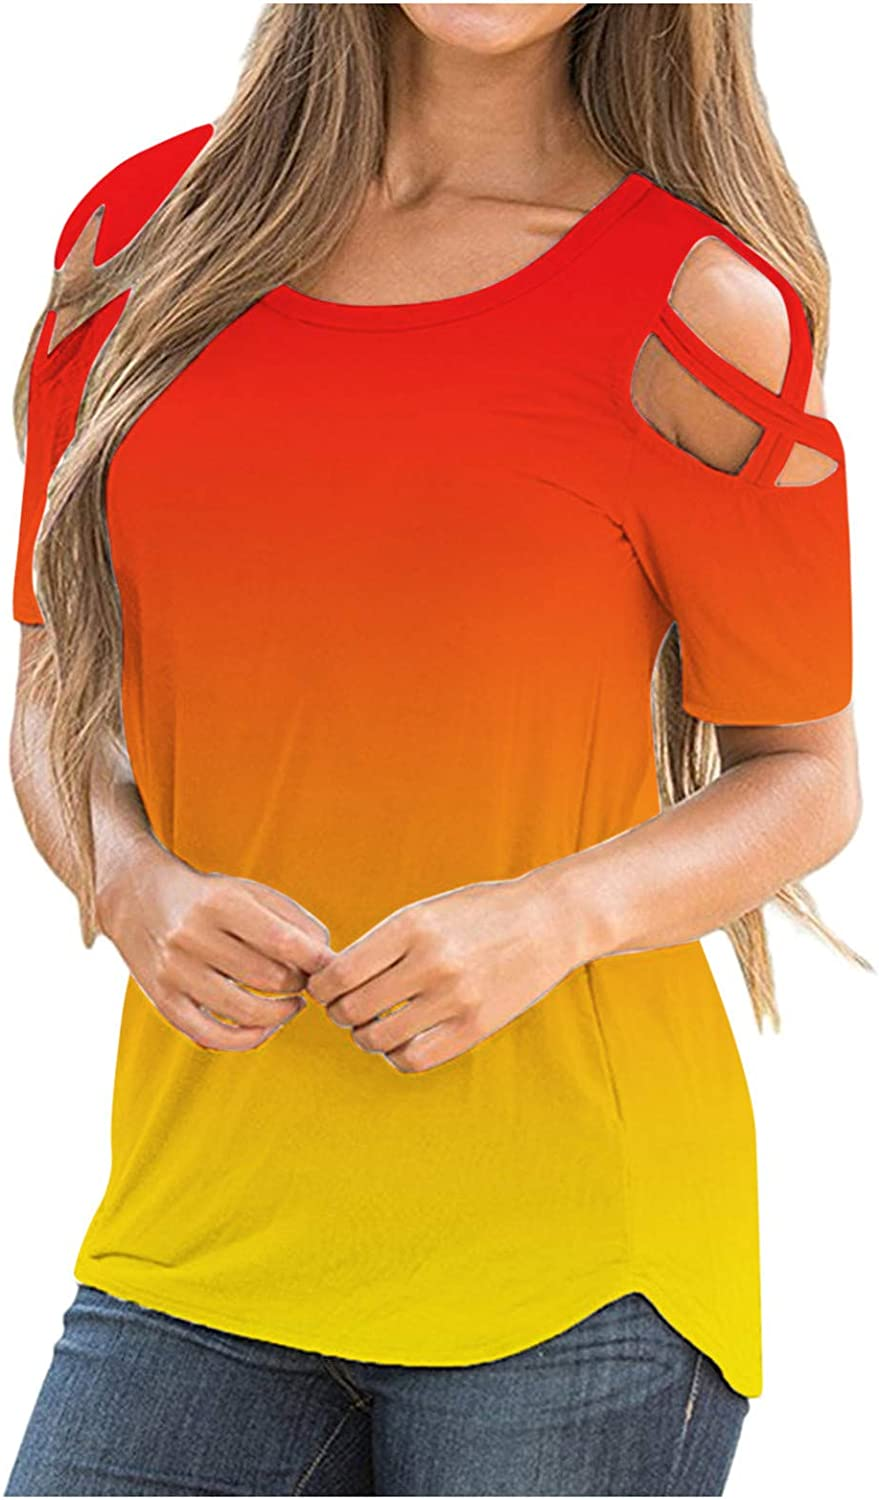 Aniwood Tie Dye Shirt Womens,Womens Cold Shoulder Tops for Women Plus Size Short Sleeve Tops Casual Summer T Shirts Tunic